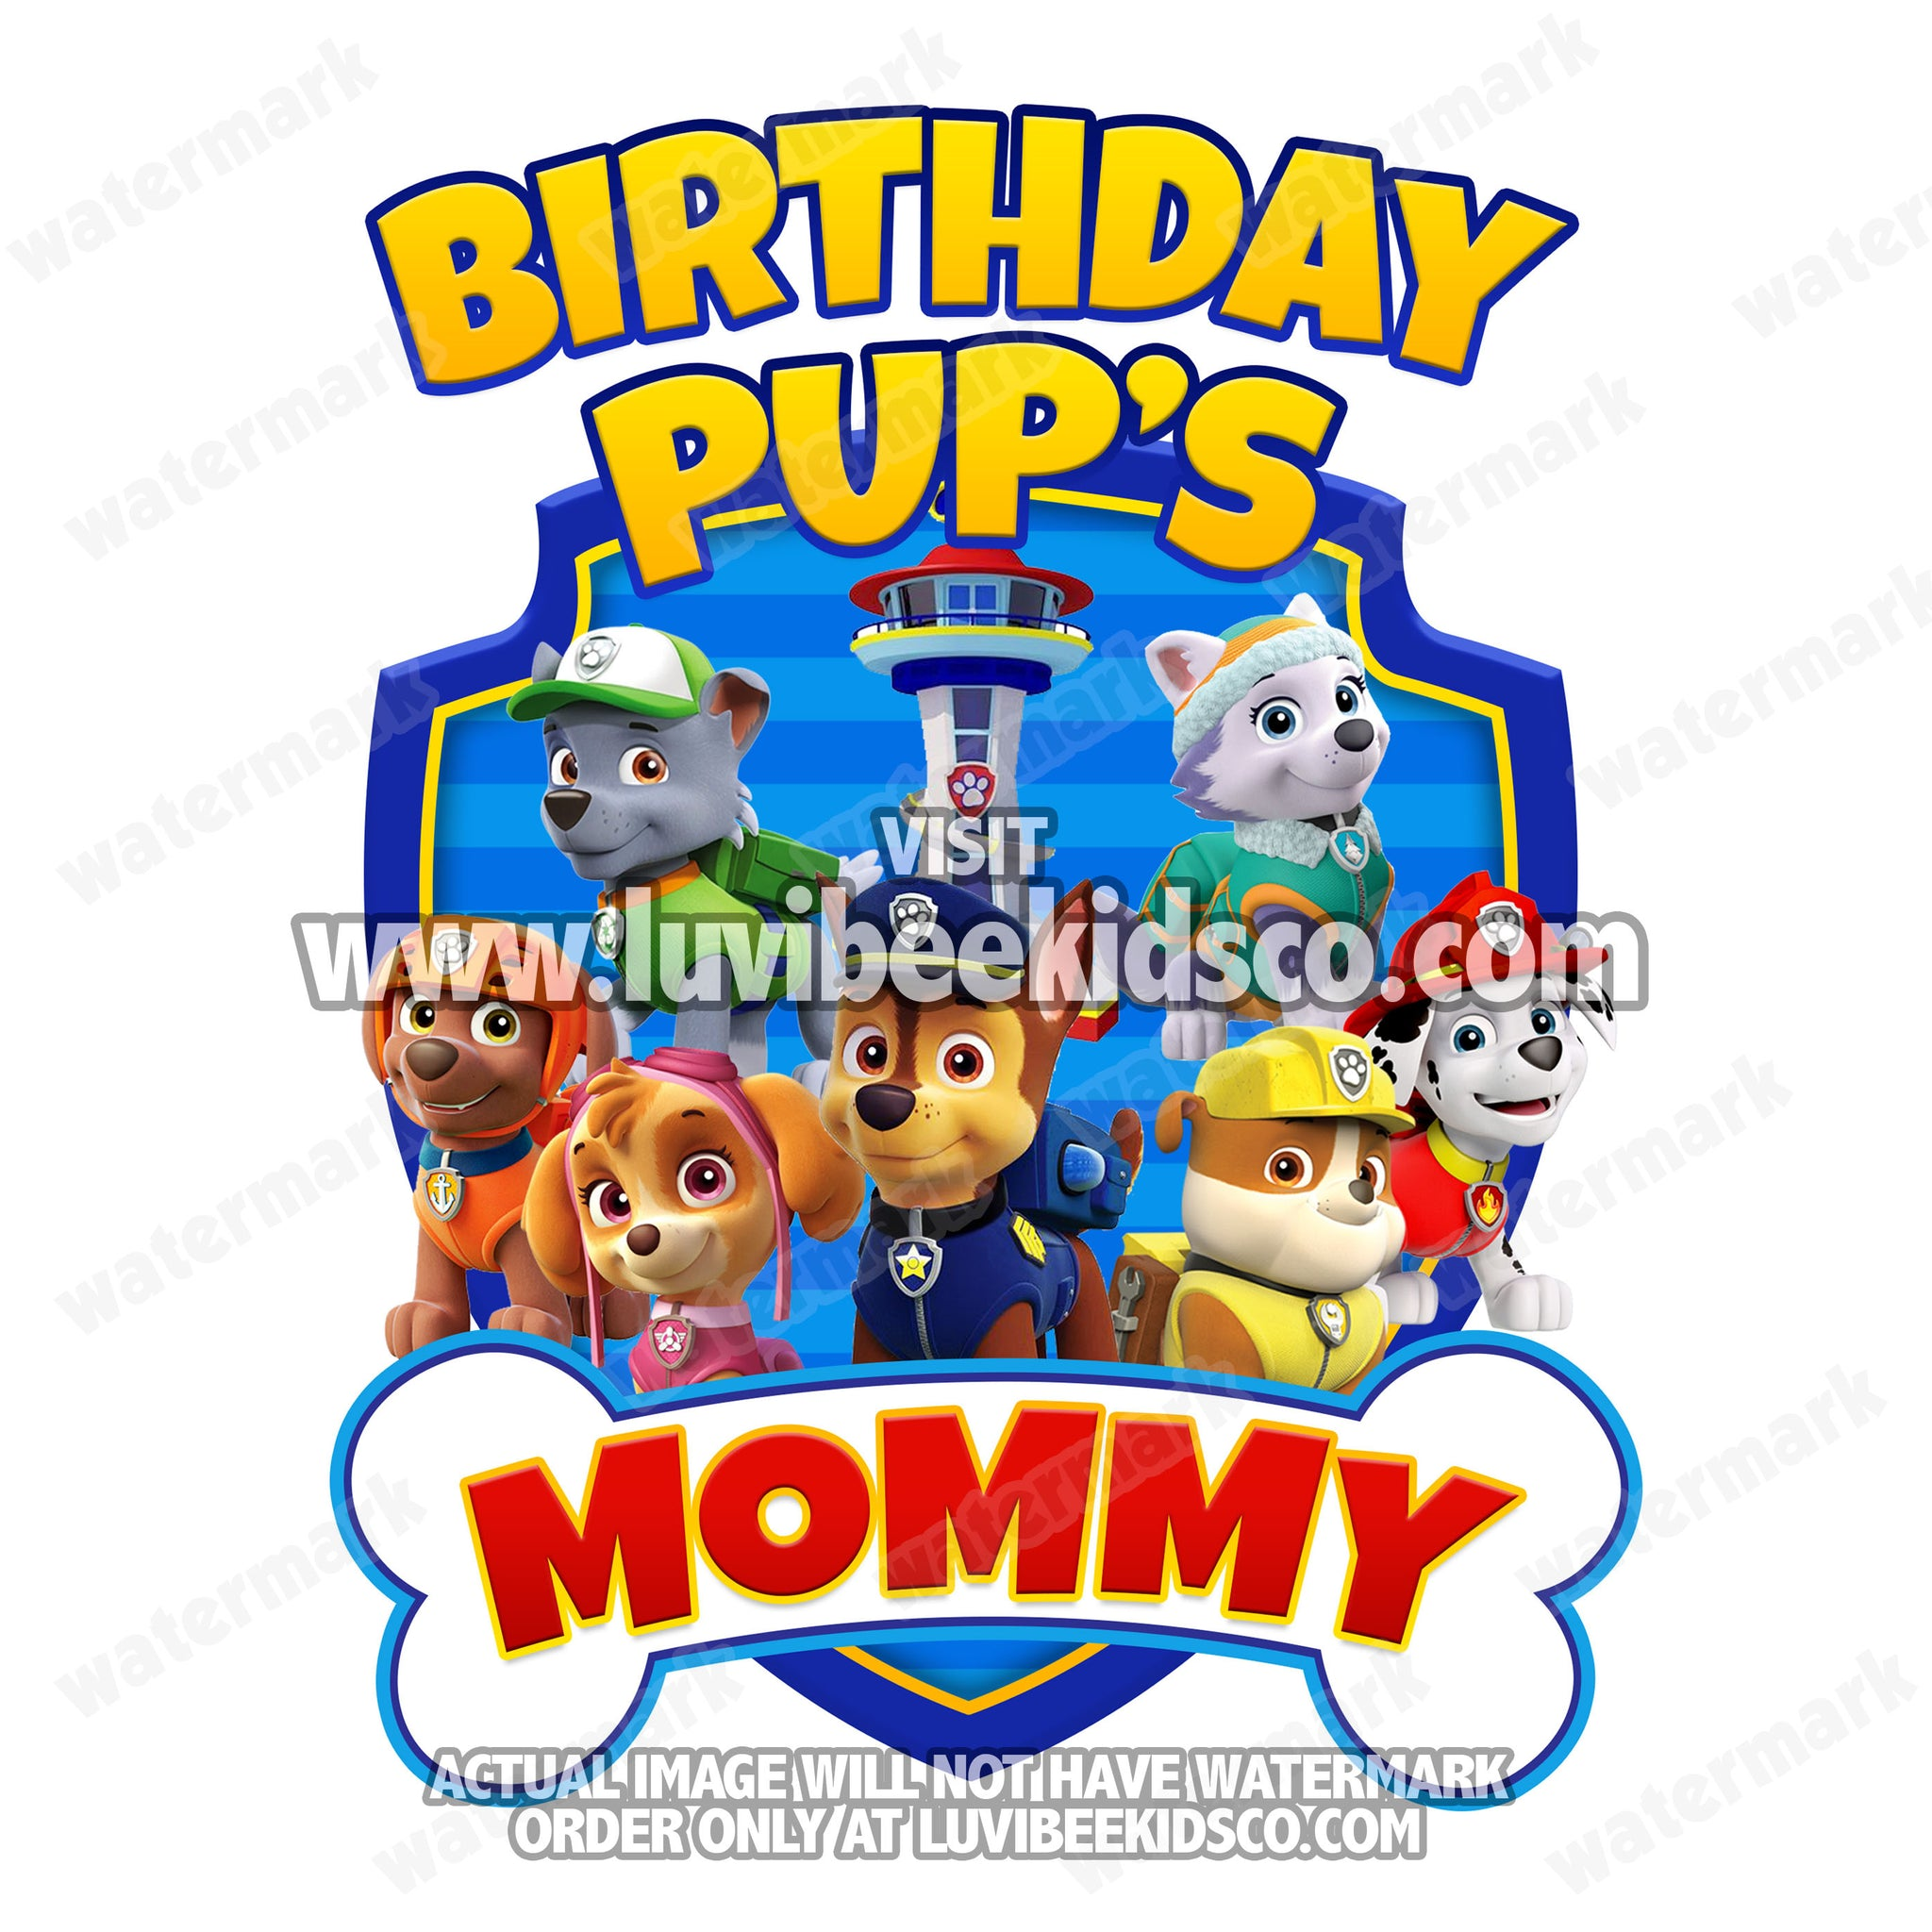 Paw Patrol Iron On Transfer - Bone | Blue - Birthday Pup's Mommy - LuvibeeKidsCo